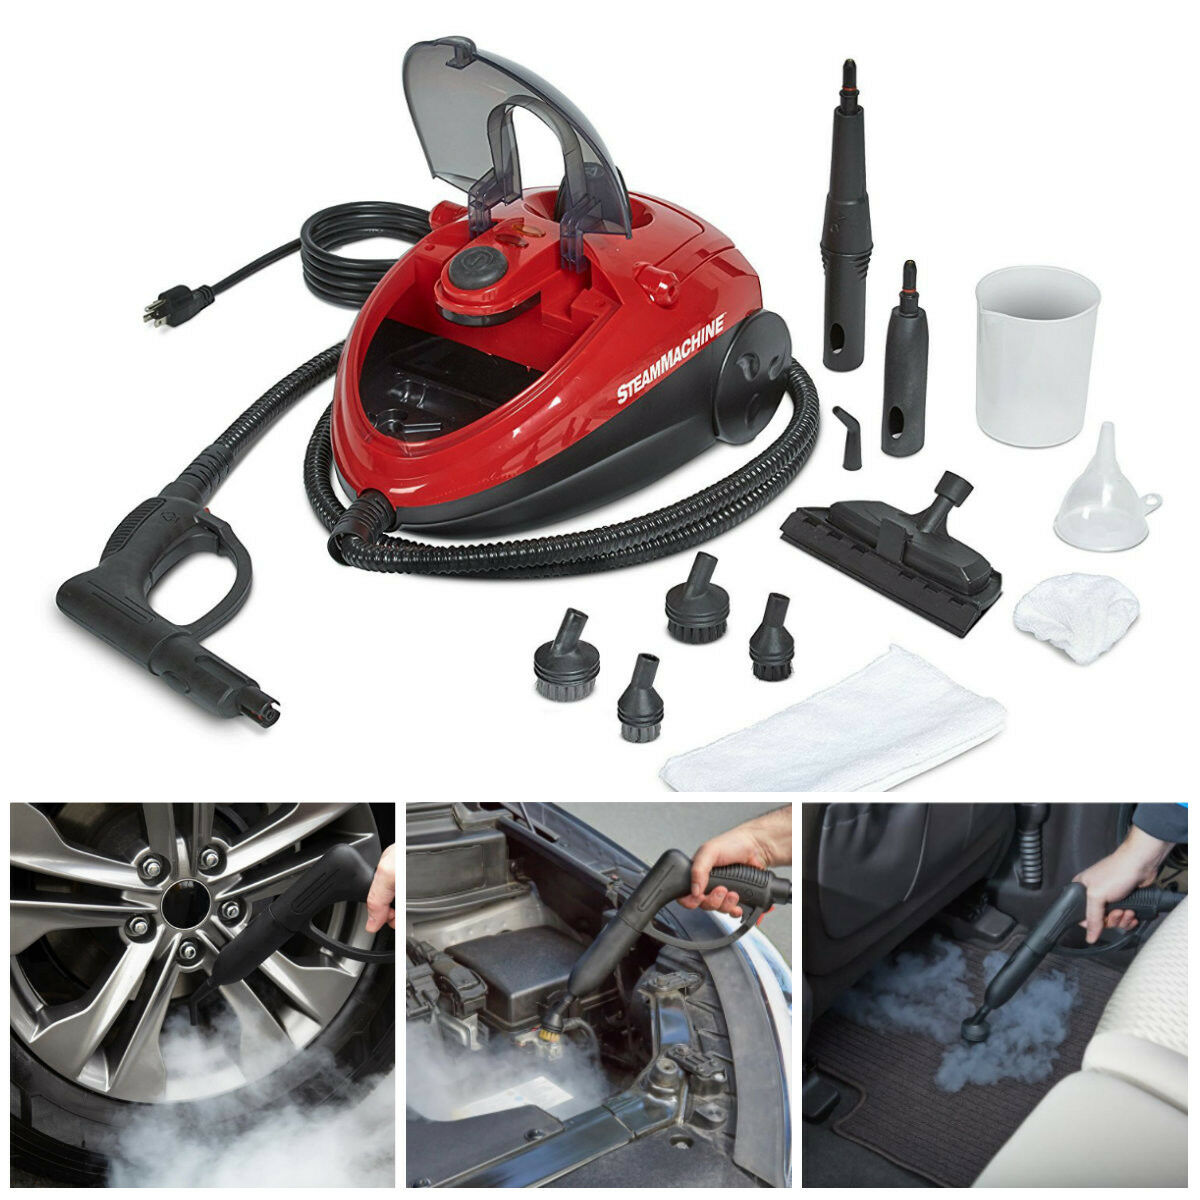 steam cleaner machine portable car care upholstery carpet floor handheld steamer ebay. Black Bedroom Furniture Sets. Home Design Ideas